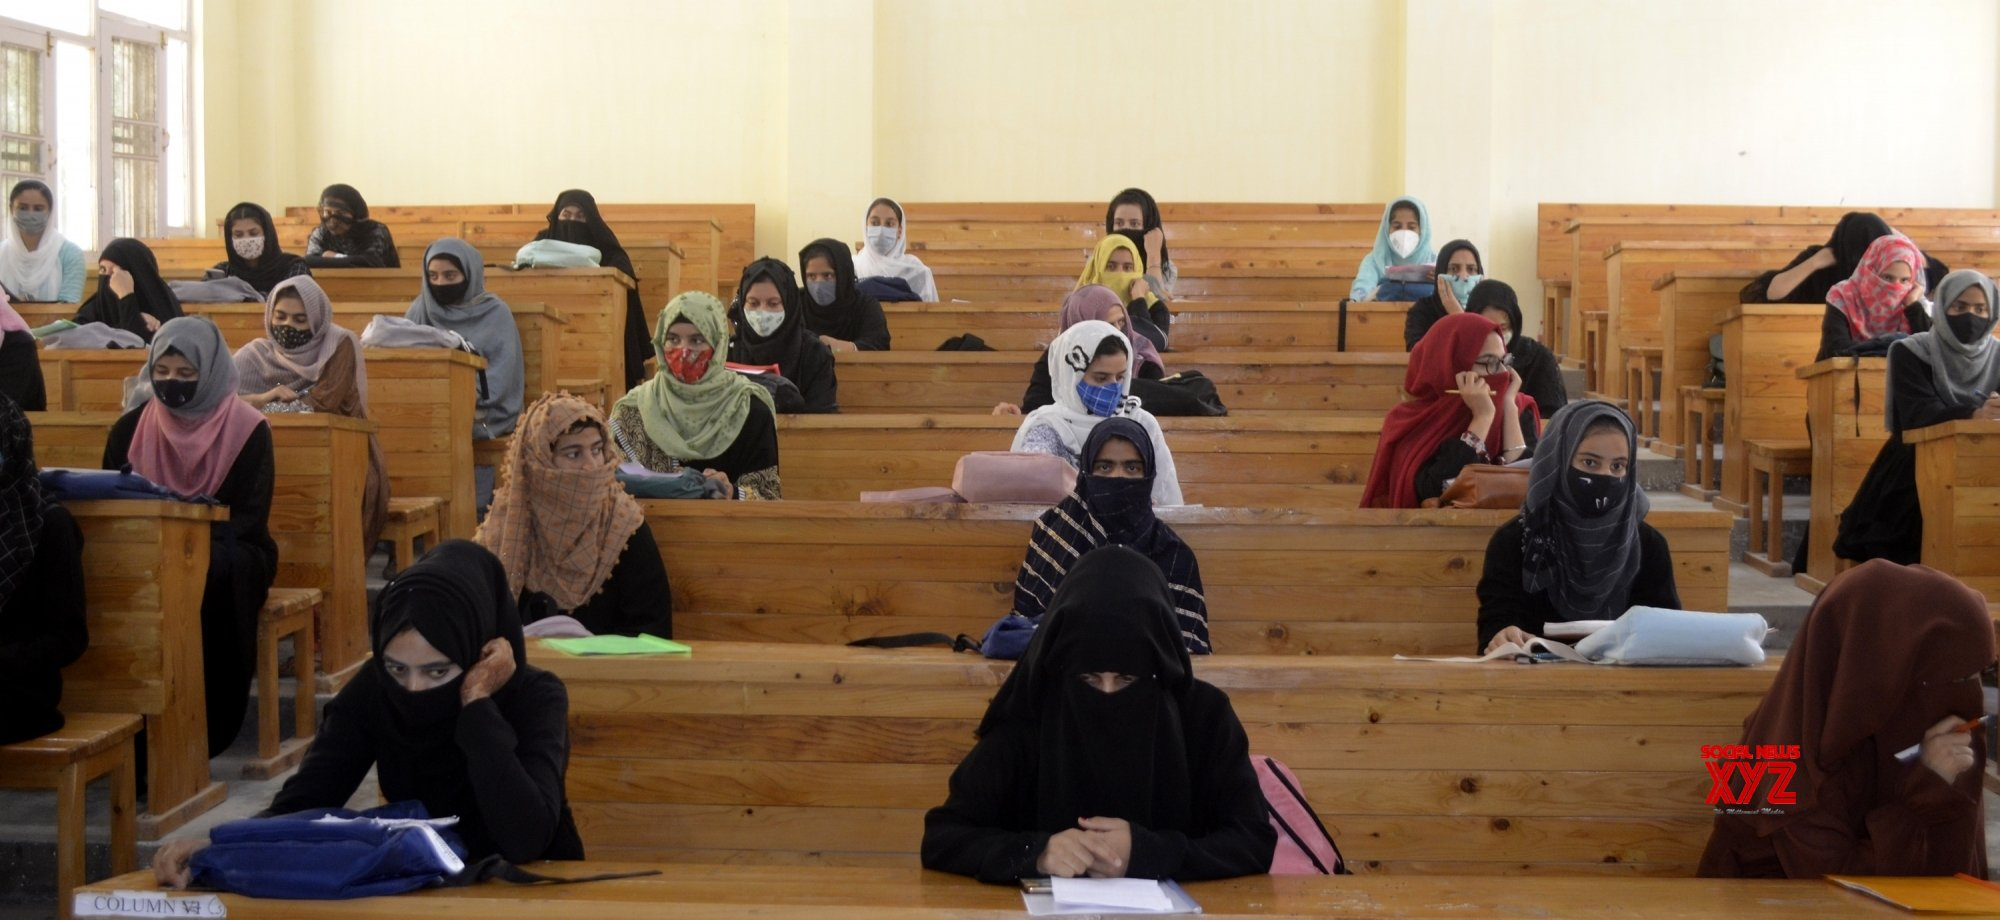 Srinagar: Students from Women's college Baramulla wait for their turn to get covid - 19 vaccine during vaccination drive in Srinagar. #Gallery